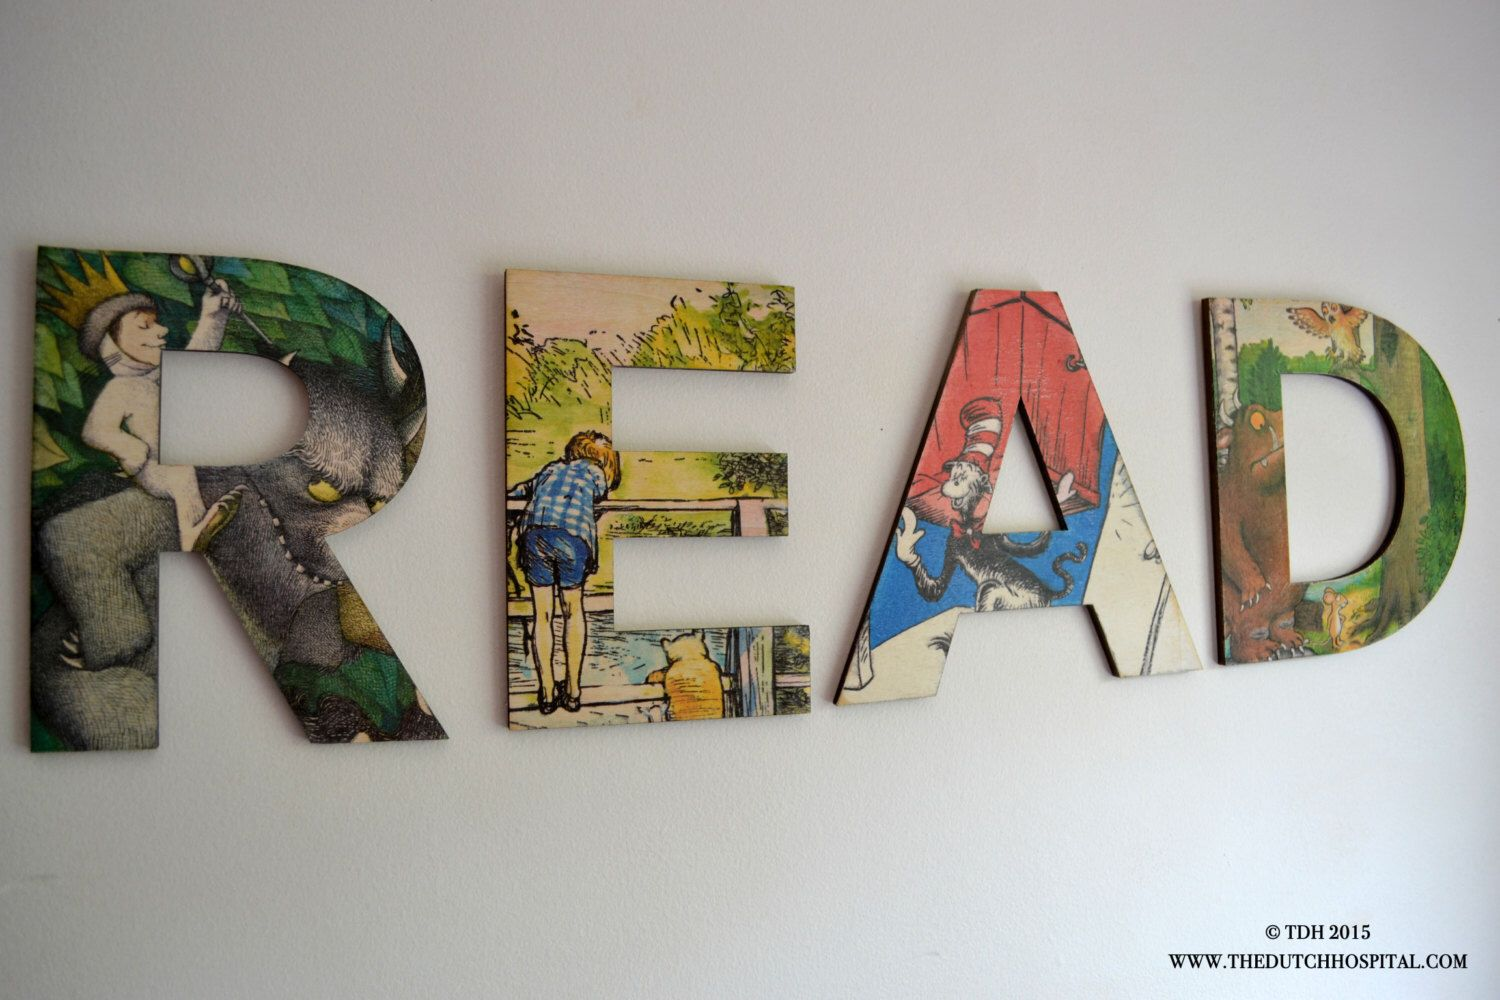 READ wall letters, Gruffalo, Personalised Wooden Name Letters – Wild Things Are – Winnie The Pooh  – Boy's room Wall Decor – Dr. Seuss by TheDutchHospital on Etsy https://www.etsy.com/listing/240055239/read-wall-letters-gruffalo-personalised